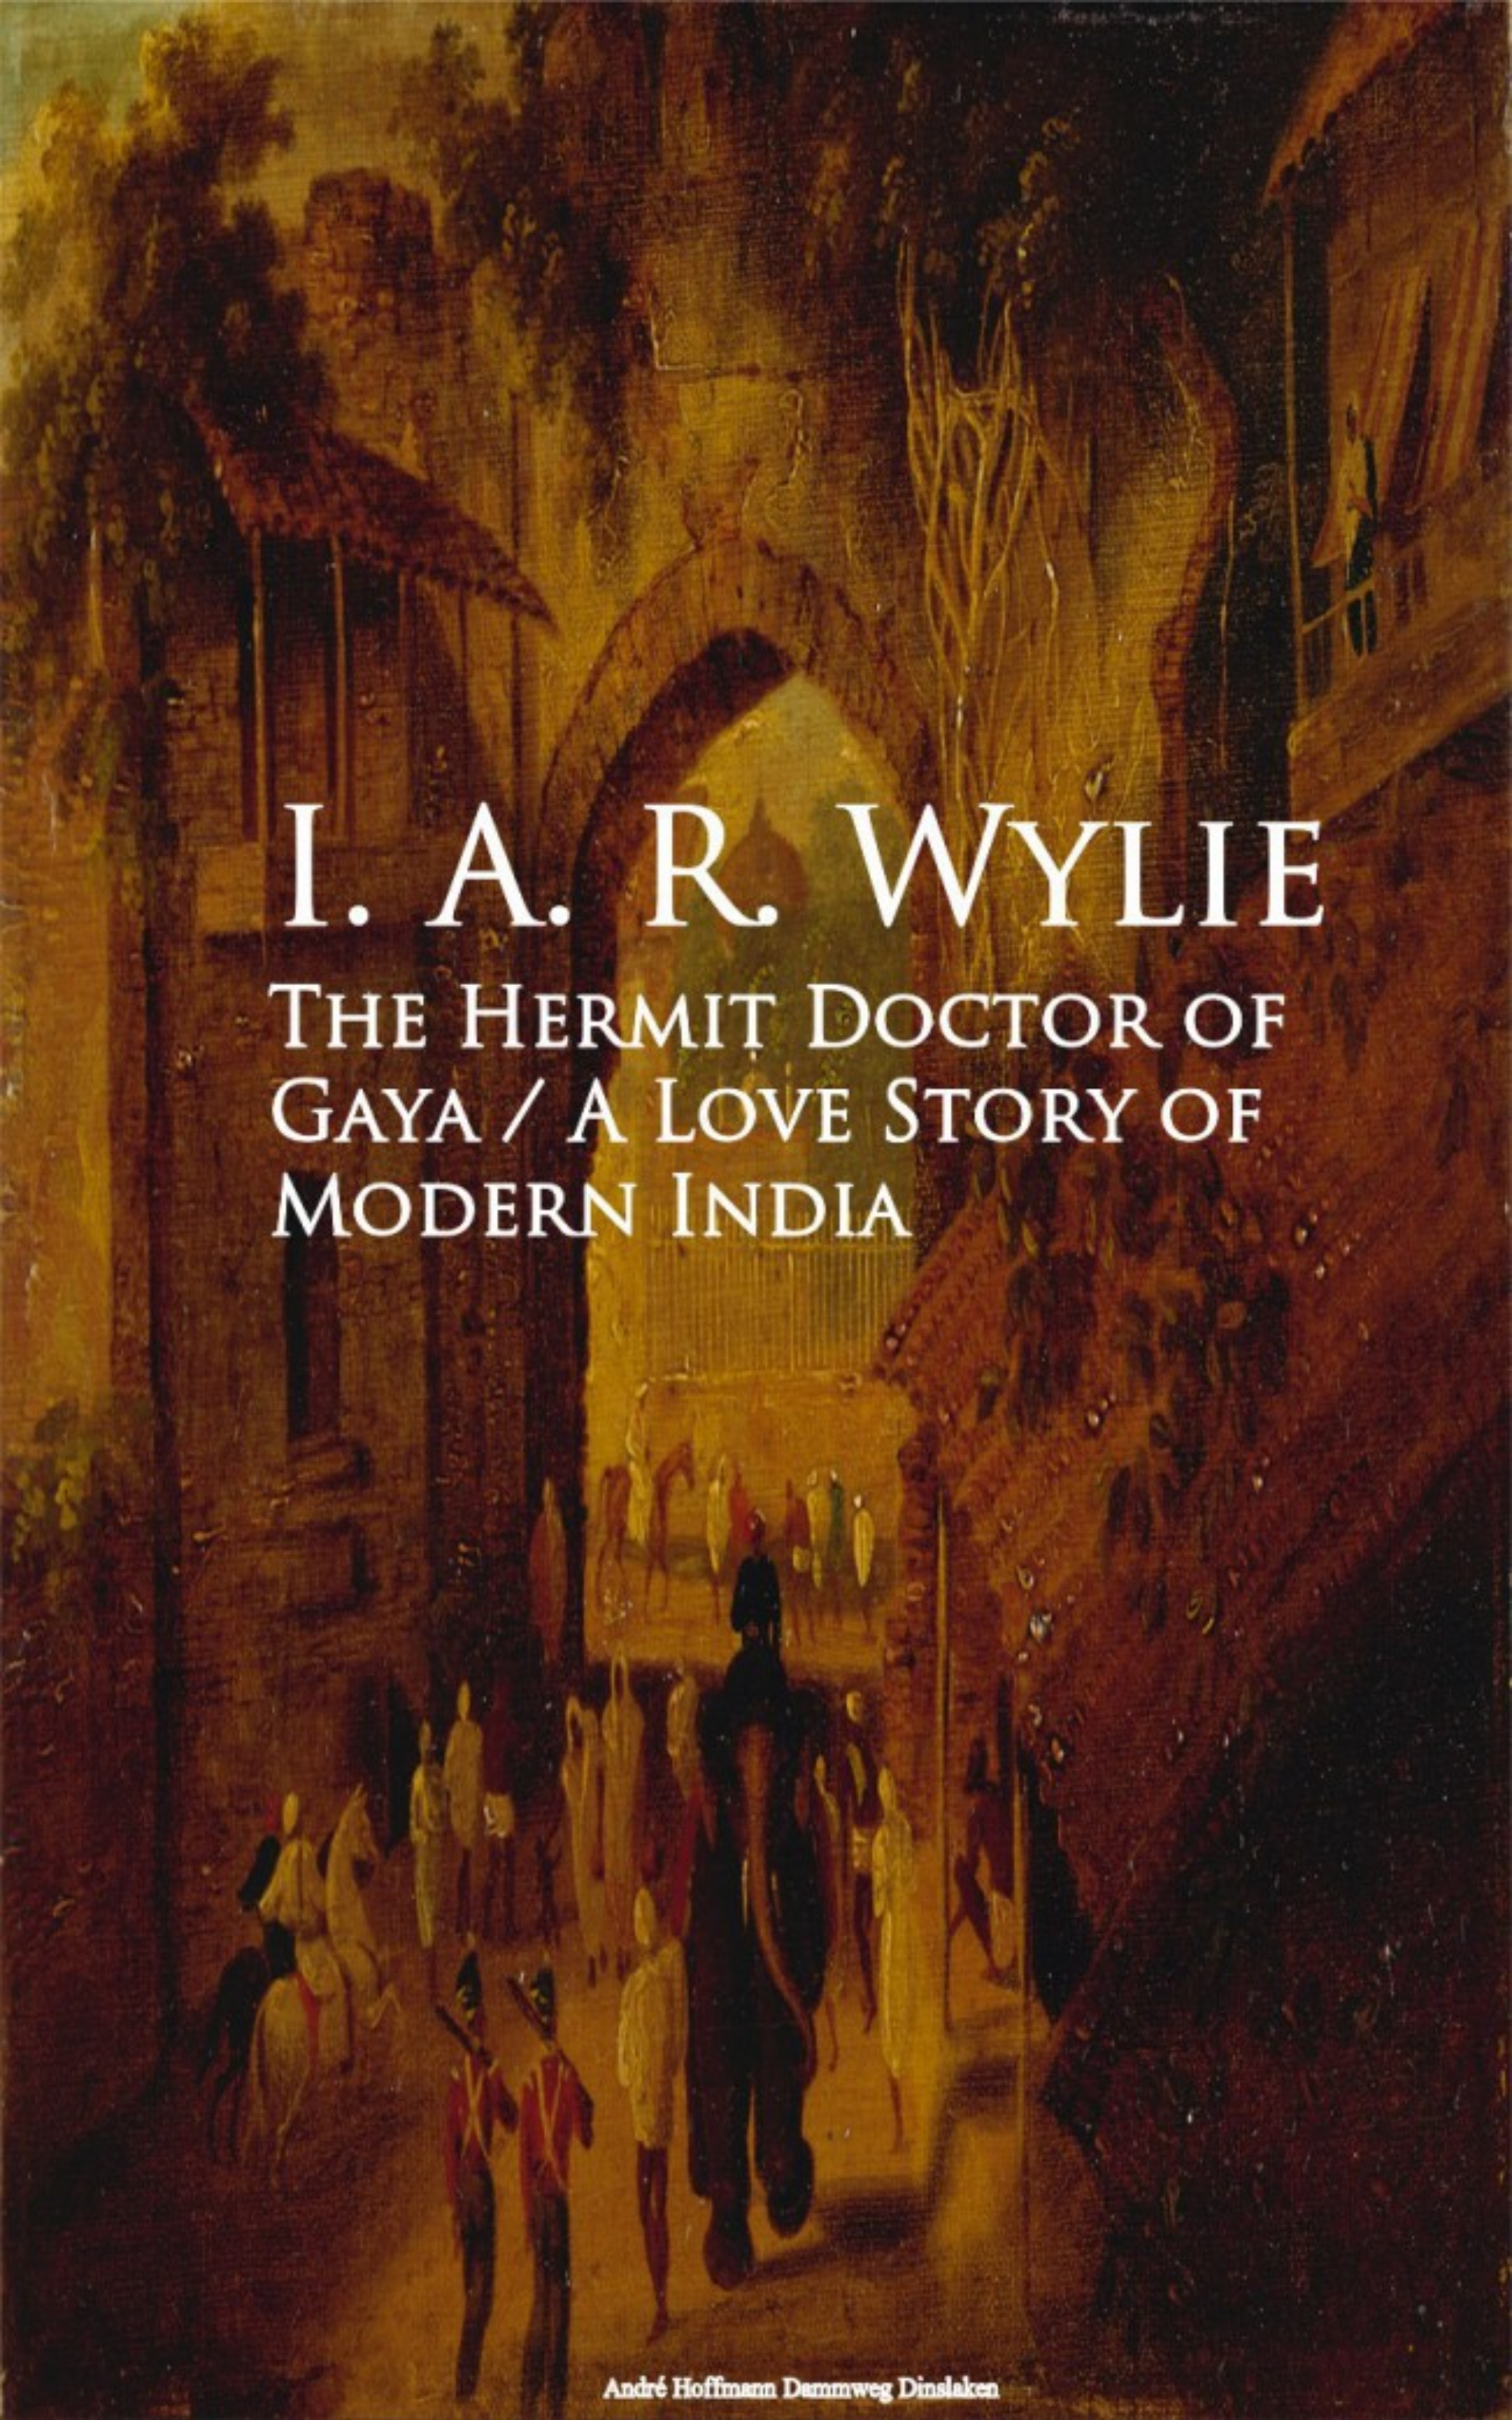 I. A. R. Wylie The Hermit Doctor of Gaya: A Love Story of Modern India pamela petro the slow breath of stone a romanesque love story